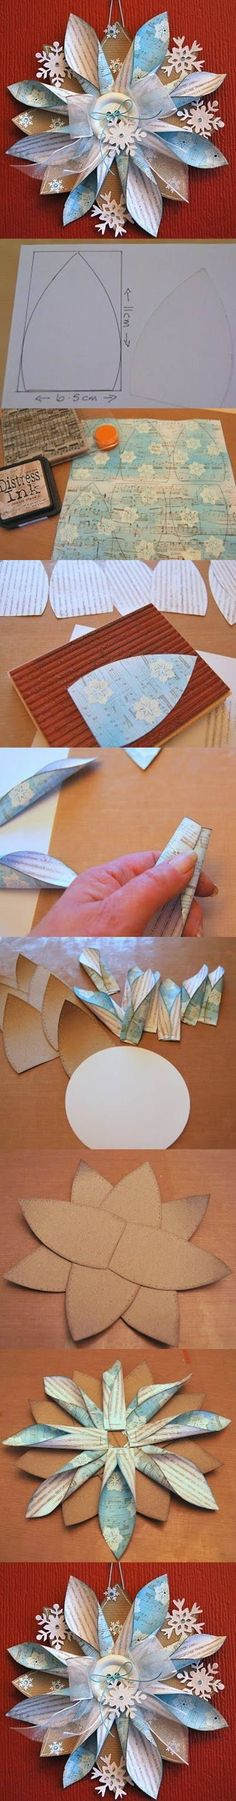 #DIY, paper flower, ornaments, tutorial